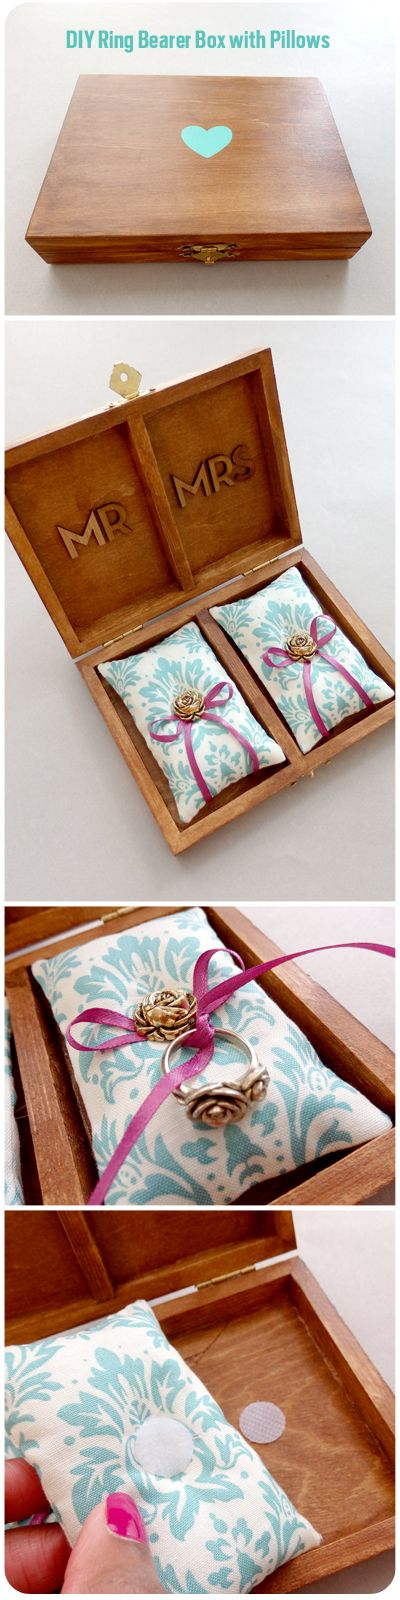 21 DIY Ring Boxes That Will Beautify and Add Romance To a Special Moment homesthetics design (2)